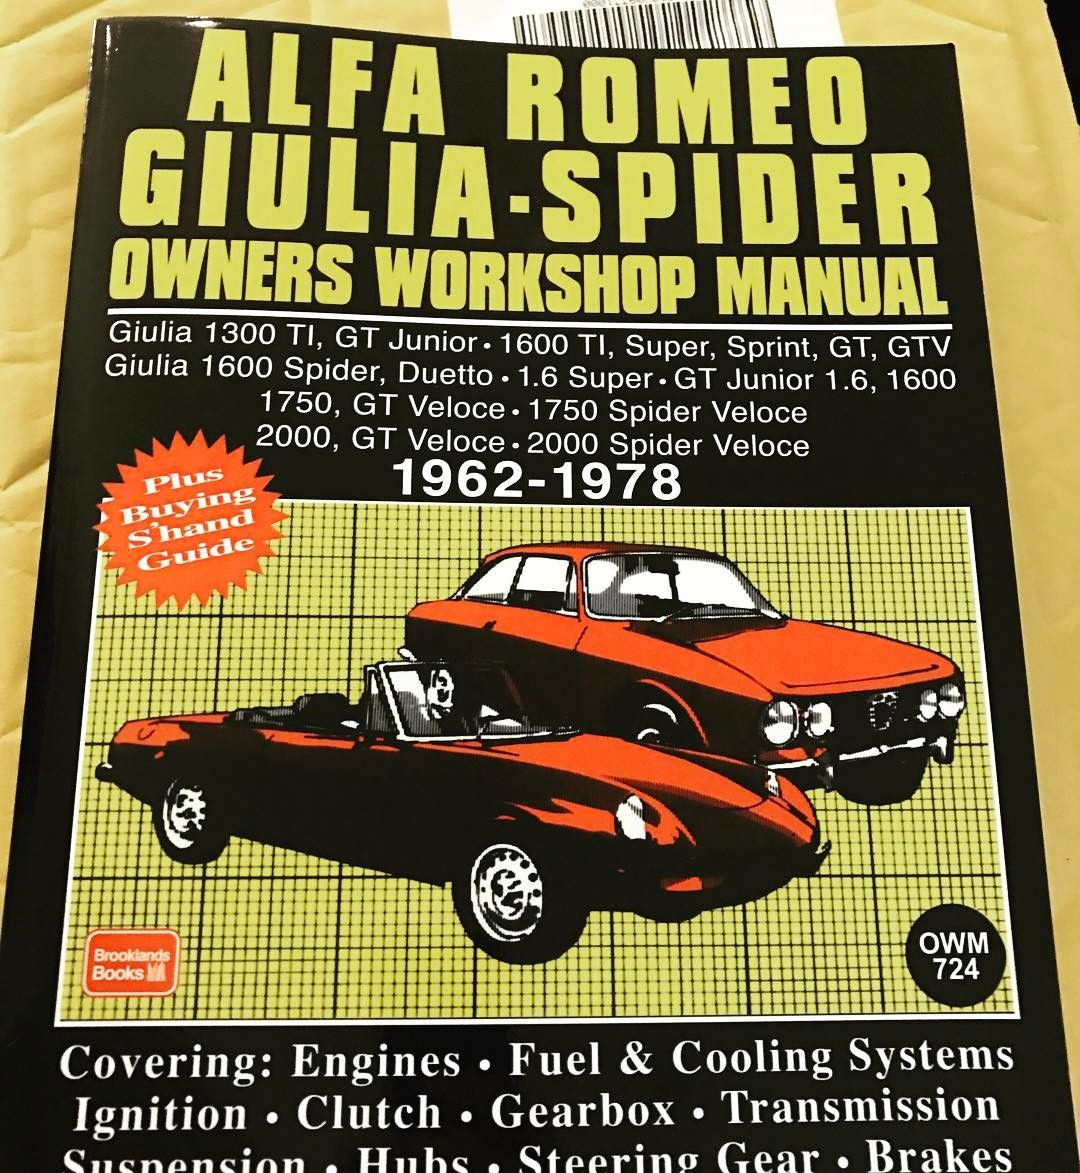 One More Day Shop Manual At The Ready Alfa Gtv Quadrifoglio Justgo Alfa Romeo Giulia Alfa Romeo Alfa Romeo Spider